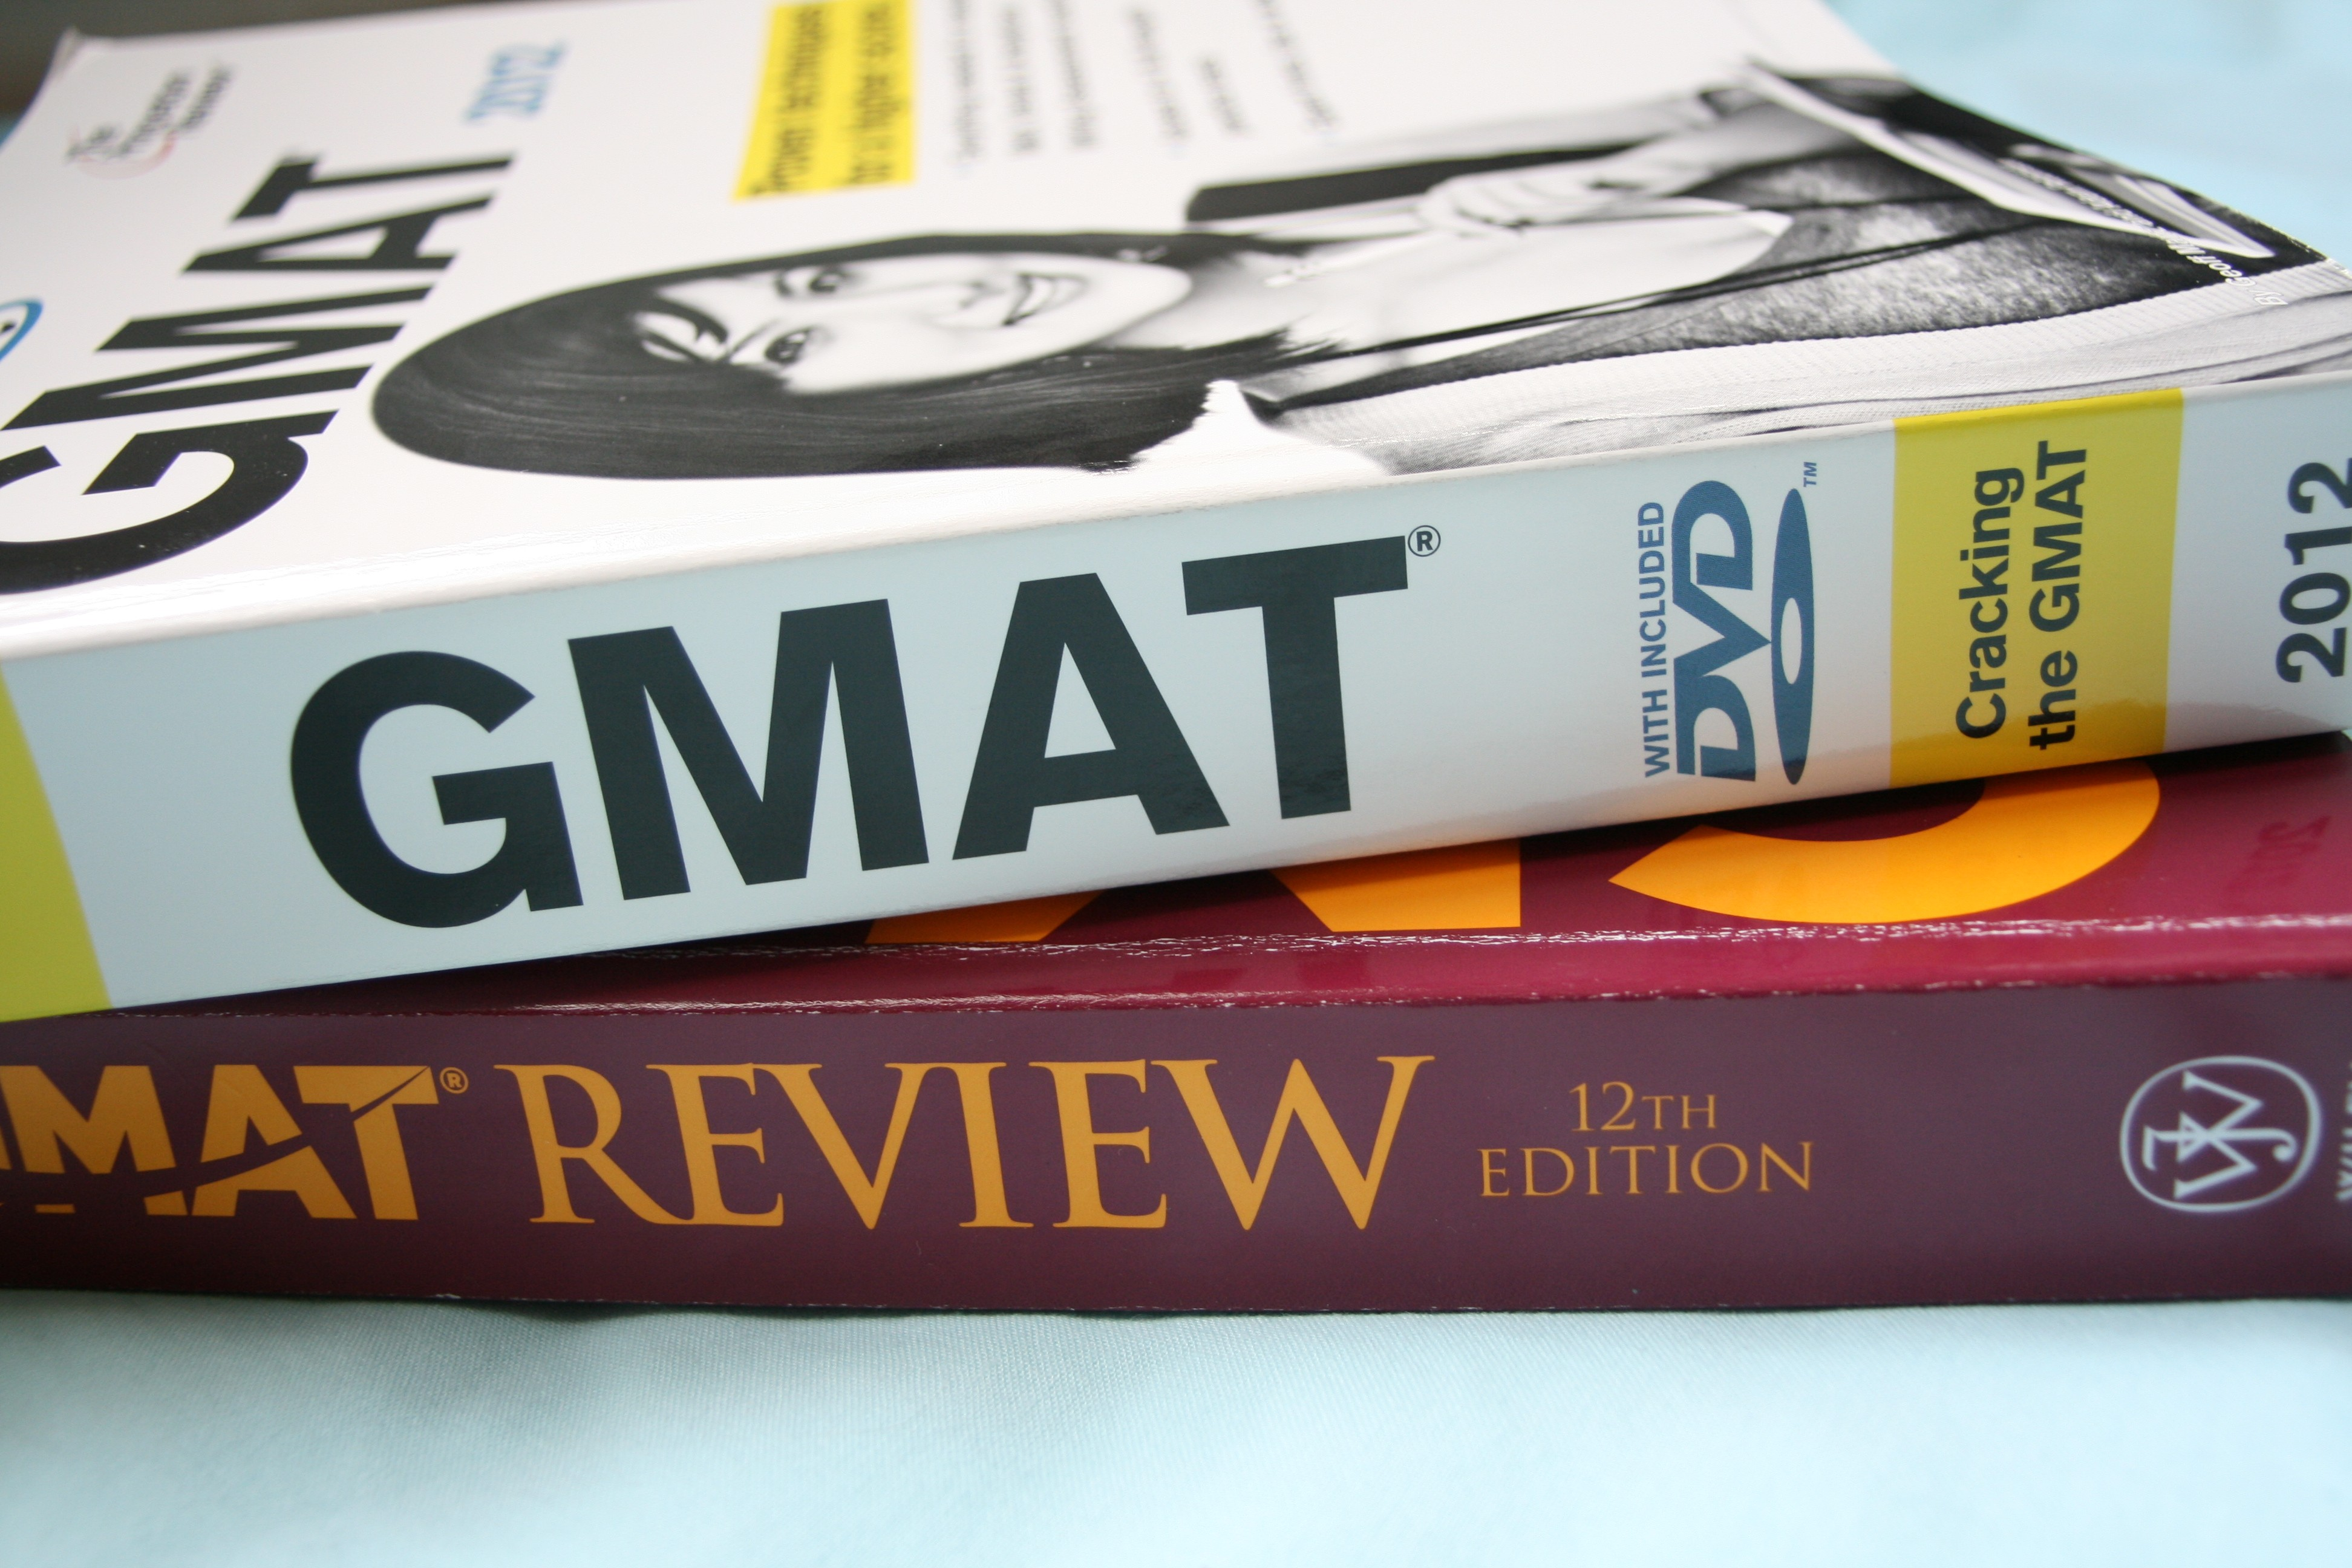 GMAT is a very competitive exam and one needs to have a good coaching or a helping hand to help oneself to score well on the GMAT. Joining The Princeton Review was a very good decision as they have amazing faculty who is always ready to go out of their way to help the students clear their problems.